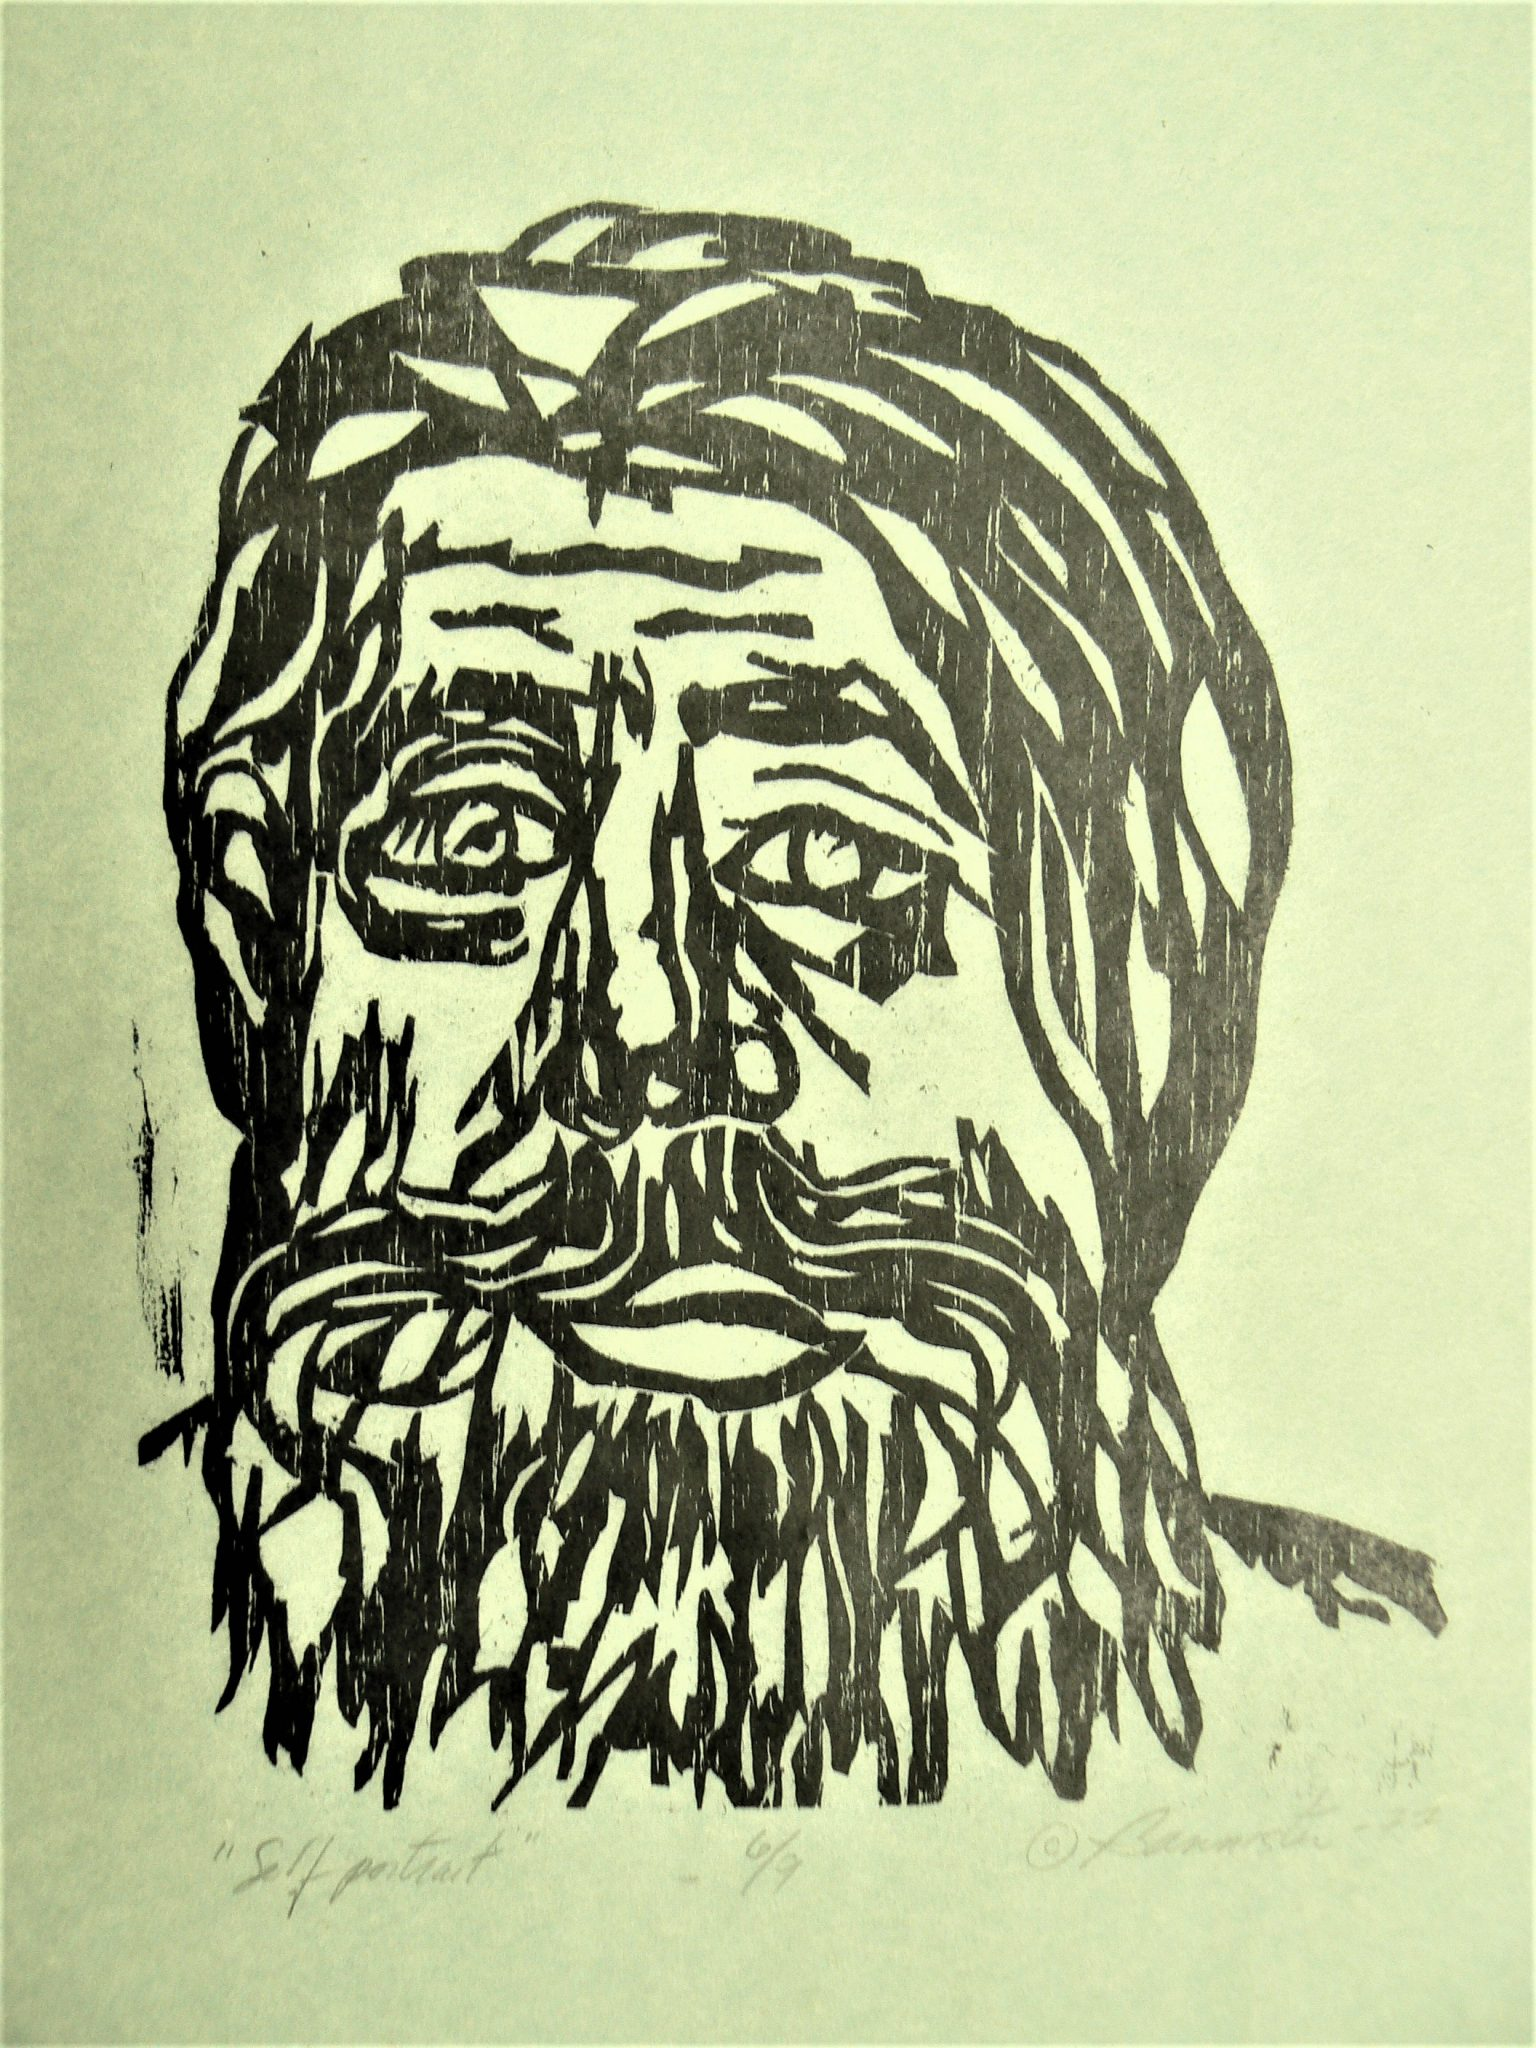 Self Portrait, wood block print